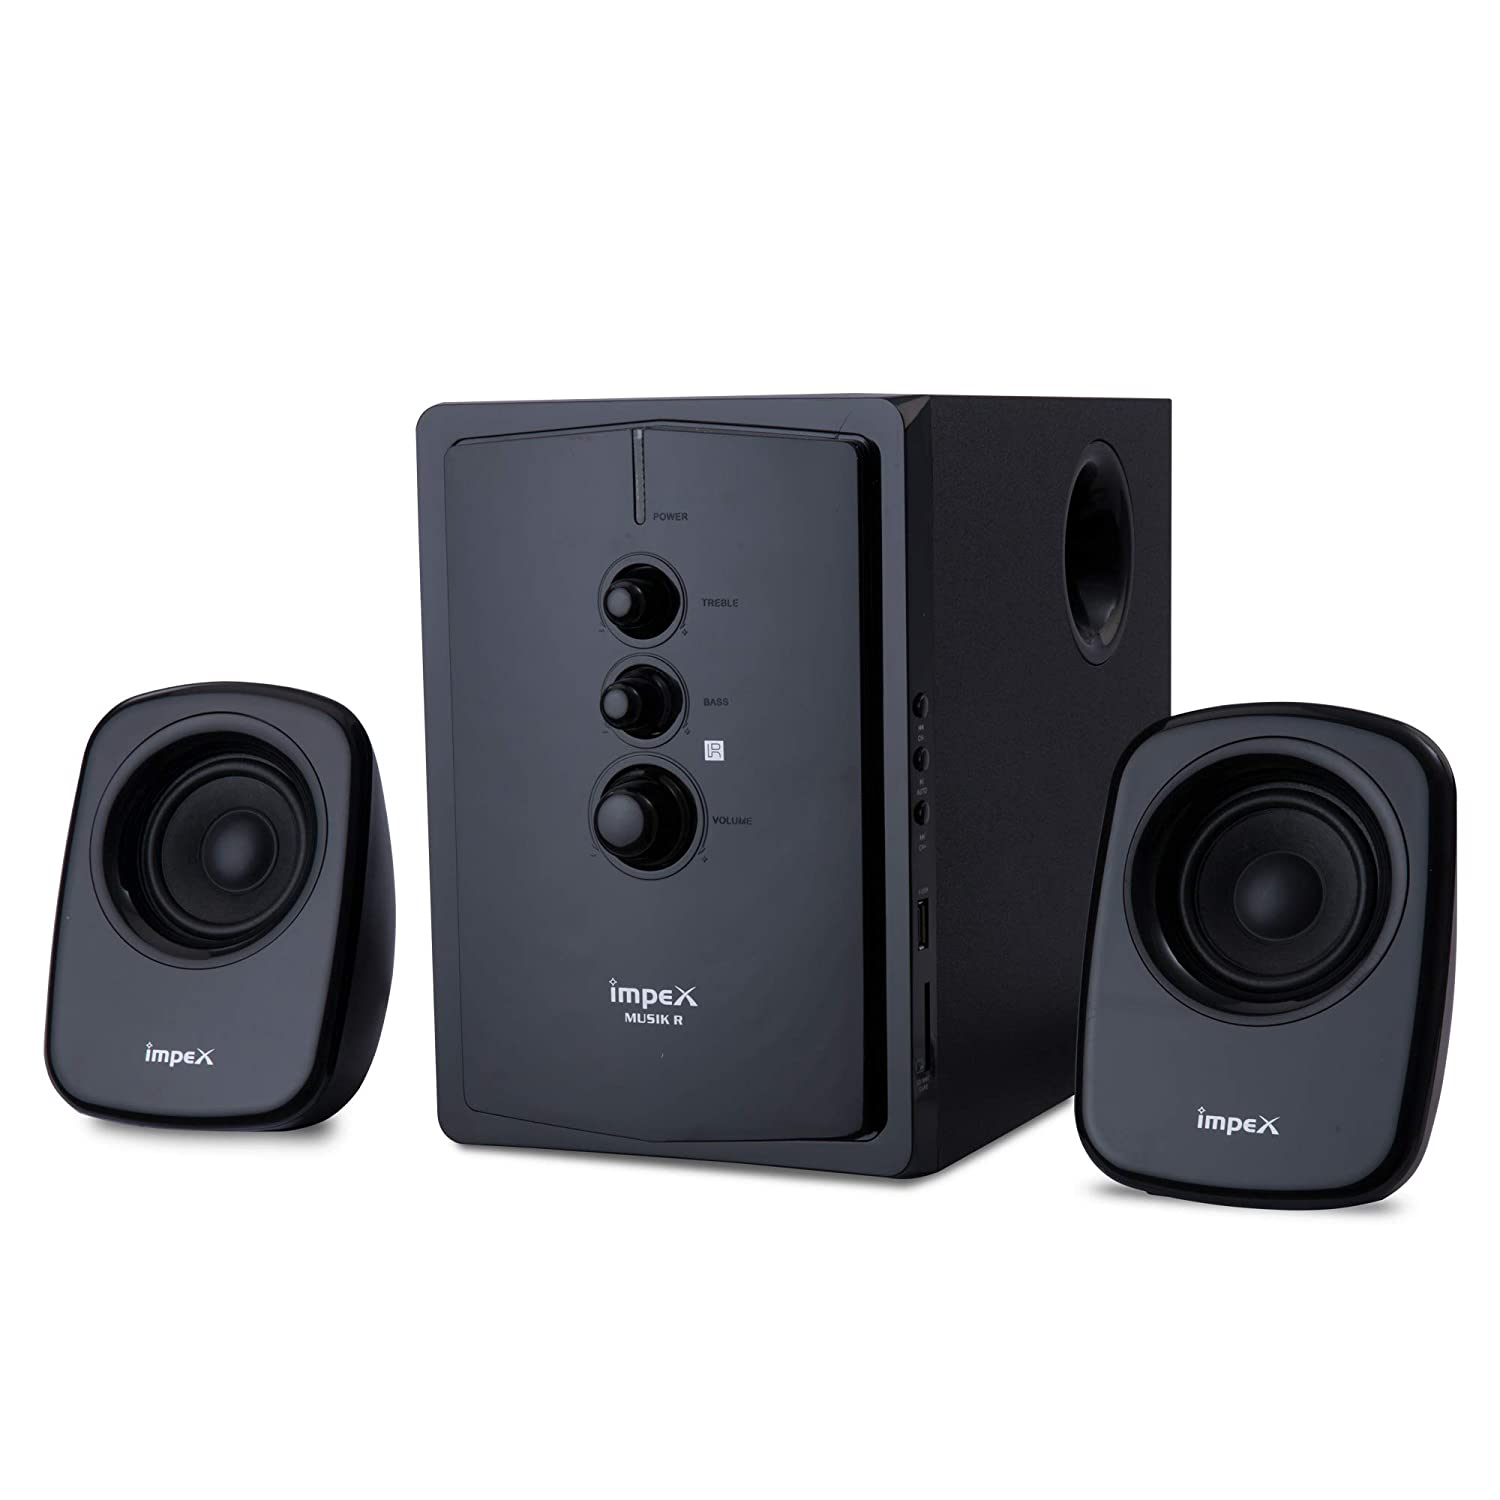 Impex 2.1 MUSIK-R 40 W Portable Multimedia Bluetooth Speaker System (Black)